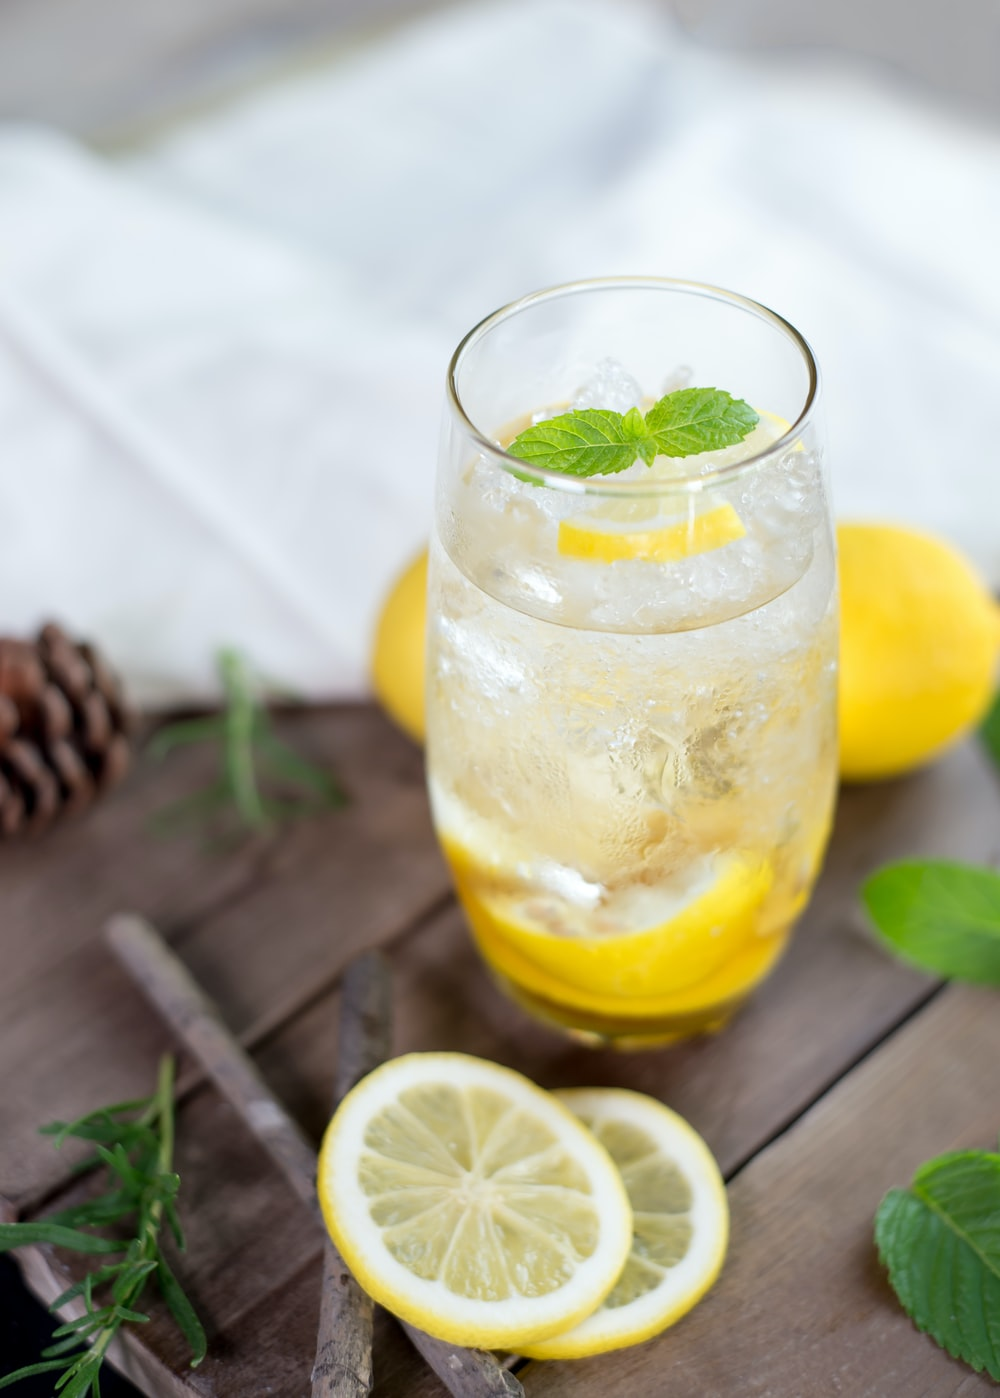 clear drinking glass with yellow liquid